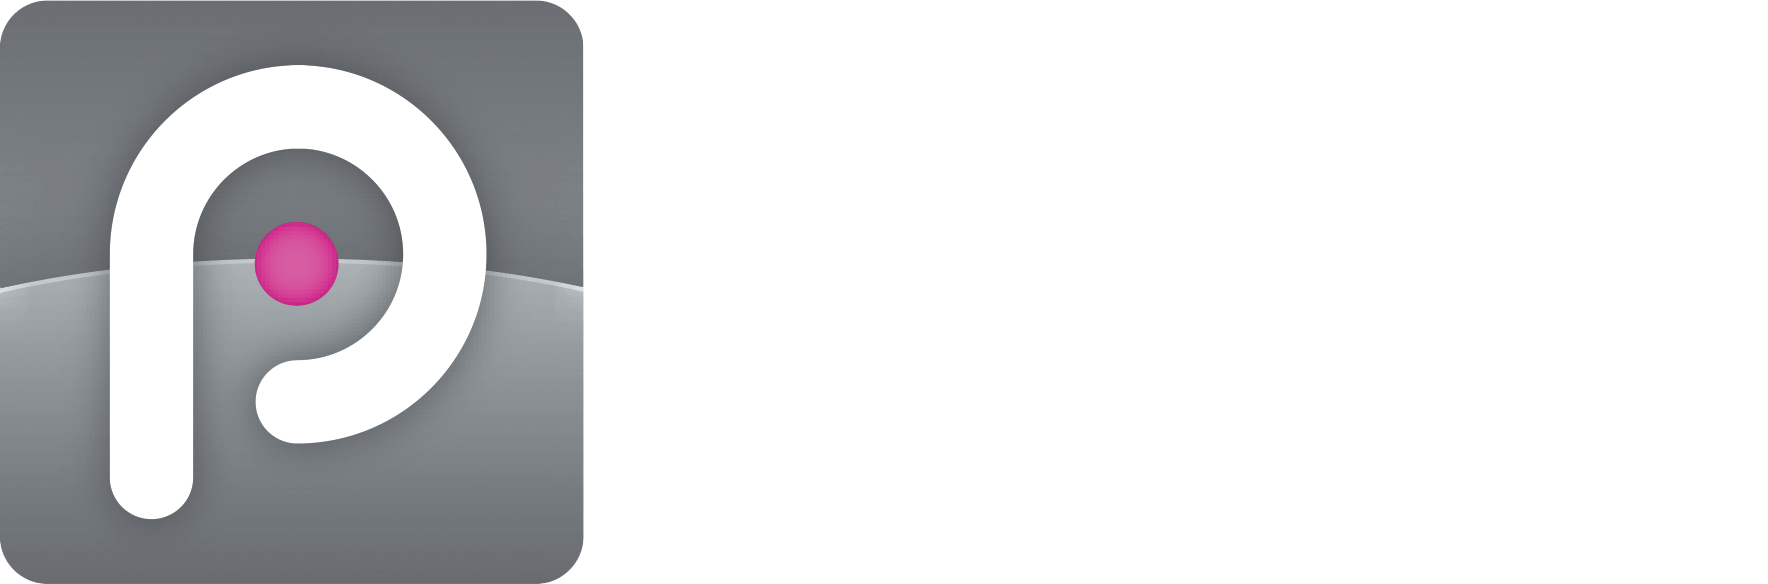 Proceutical | Pharmaceutical Consulting